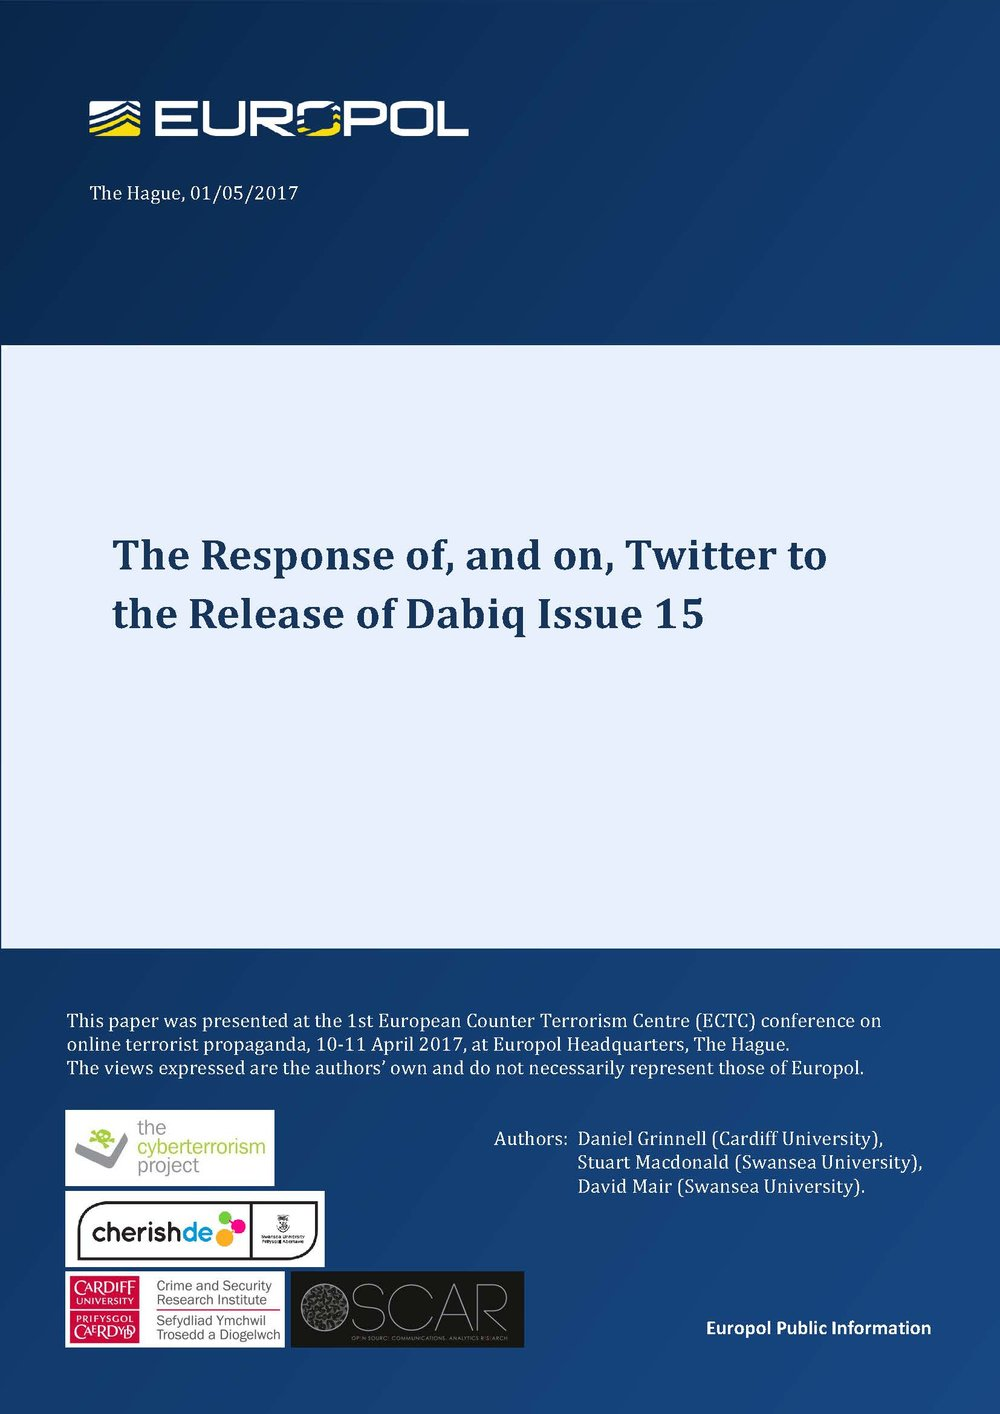 The Response of, and on, Twitter to the Release of Dabiq Issue 15 -